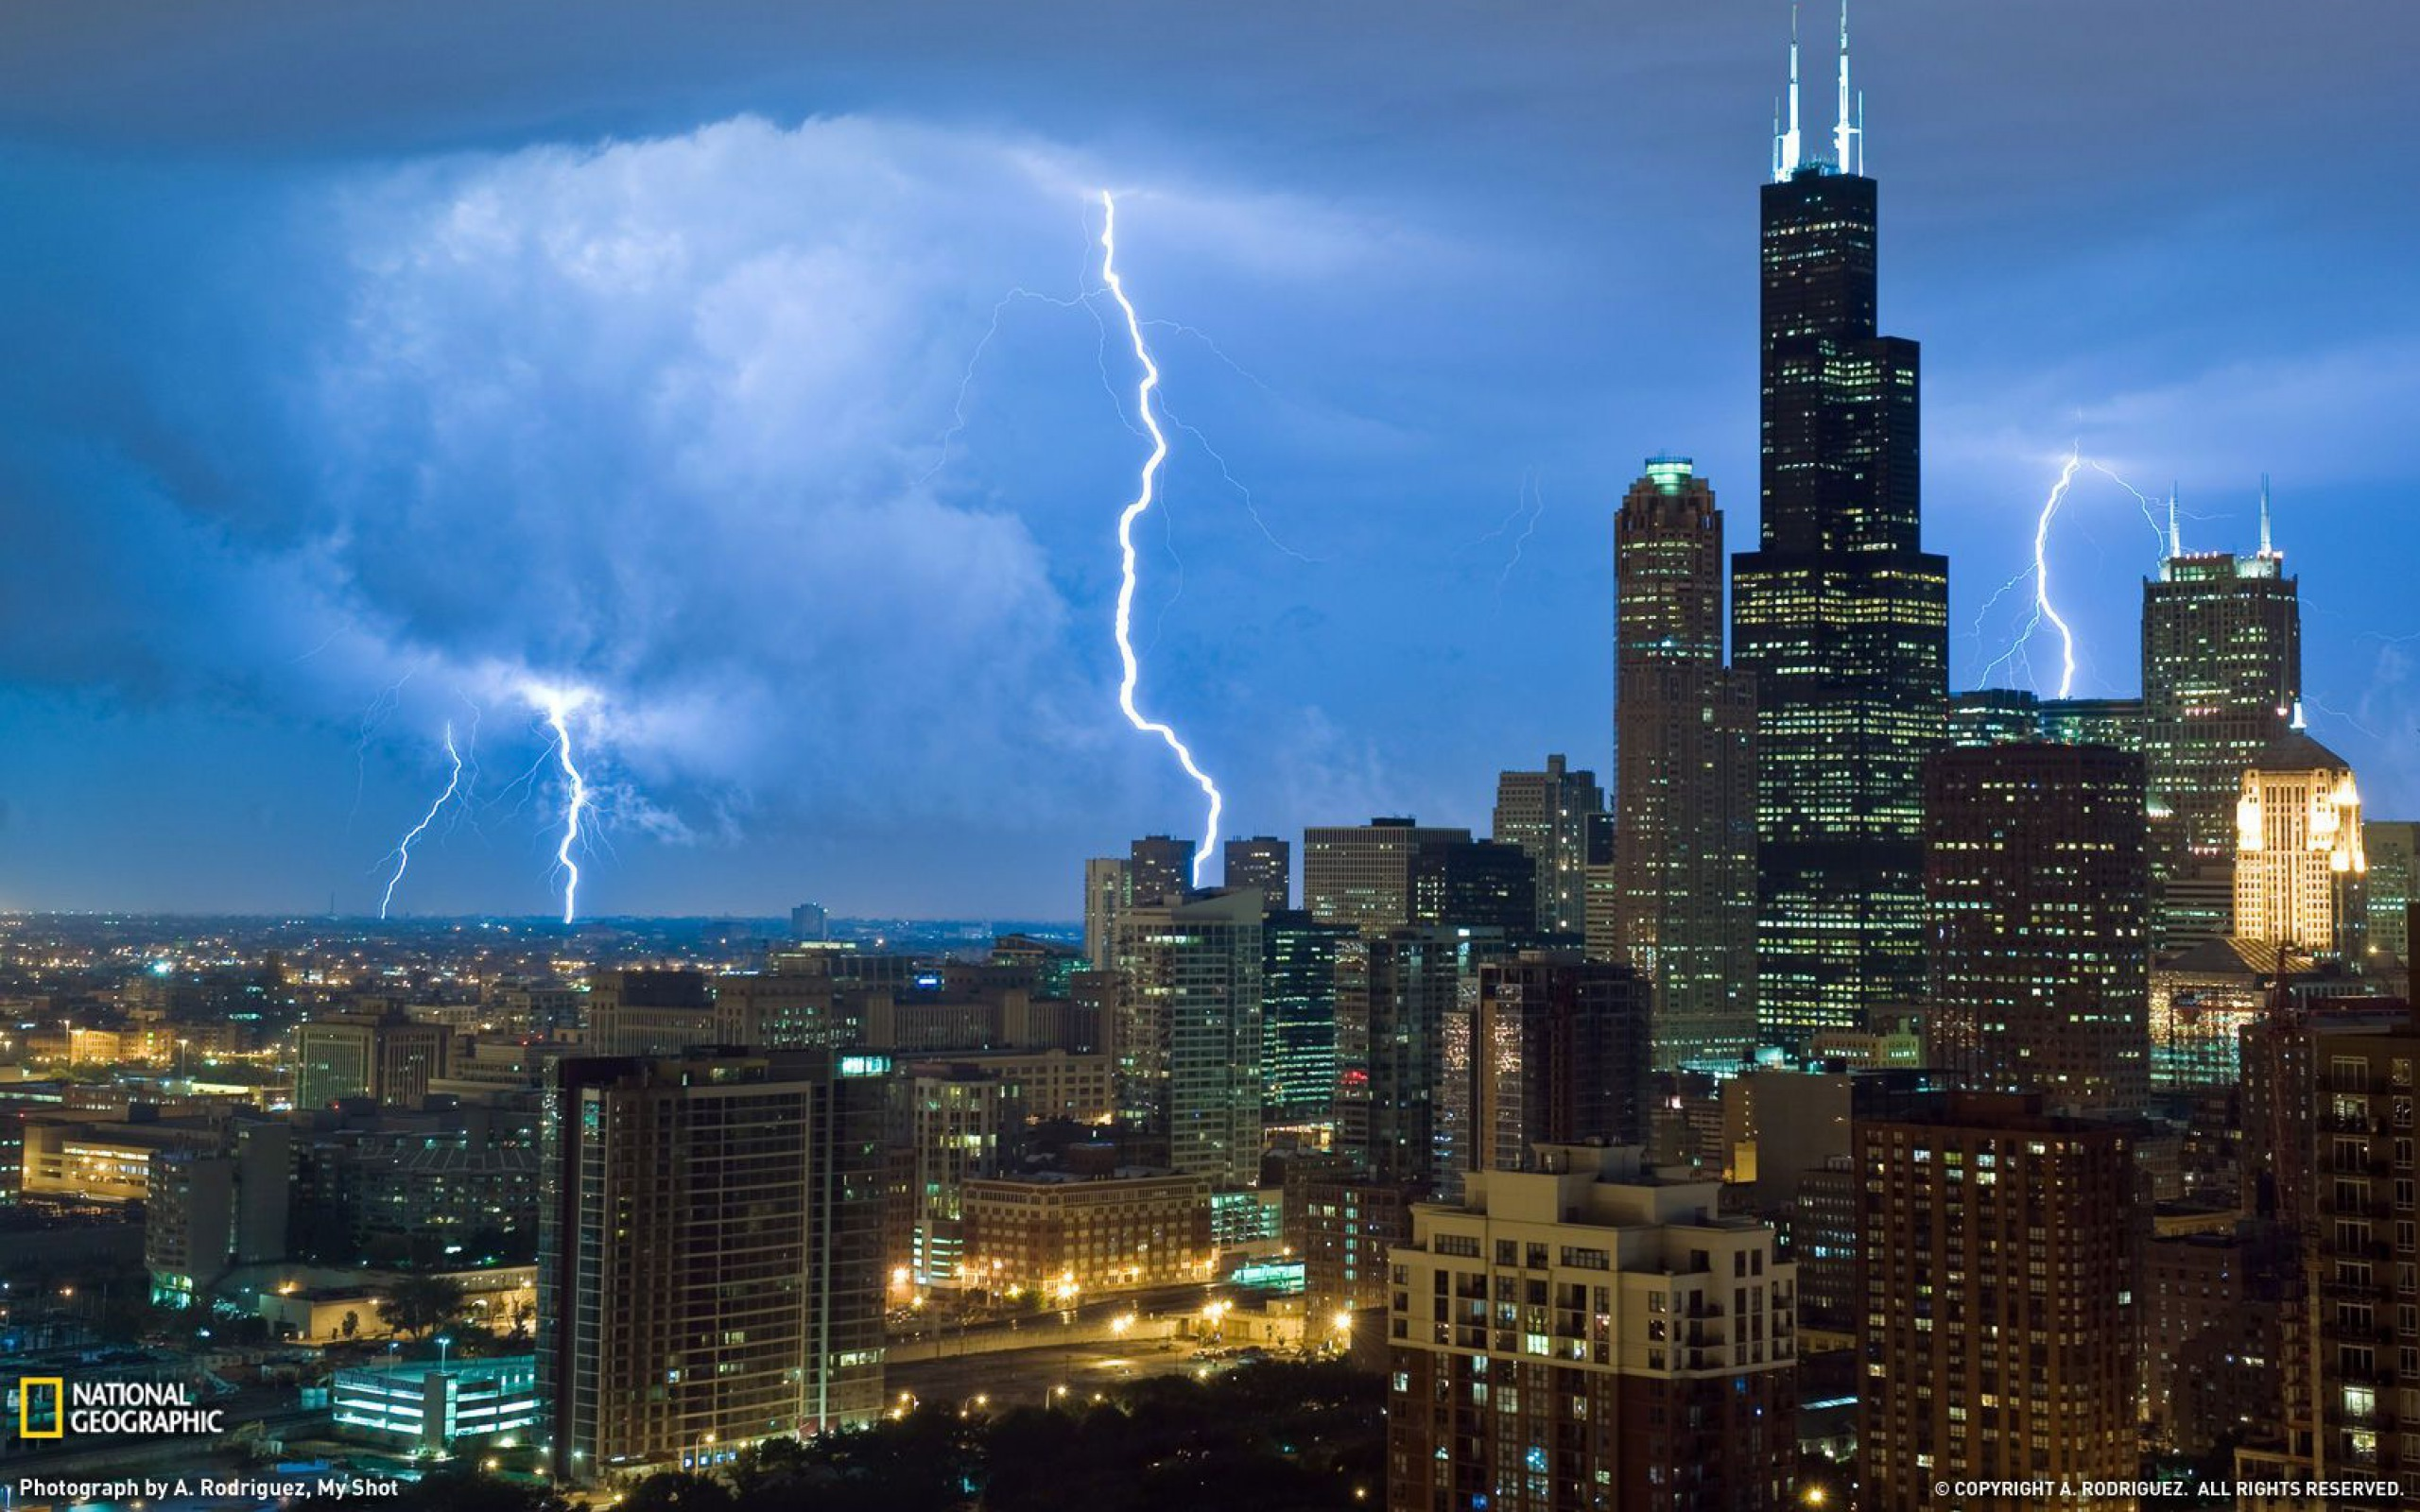 USA Chicago Illinois city skyscrapers lightning photo 2560x1600